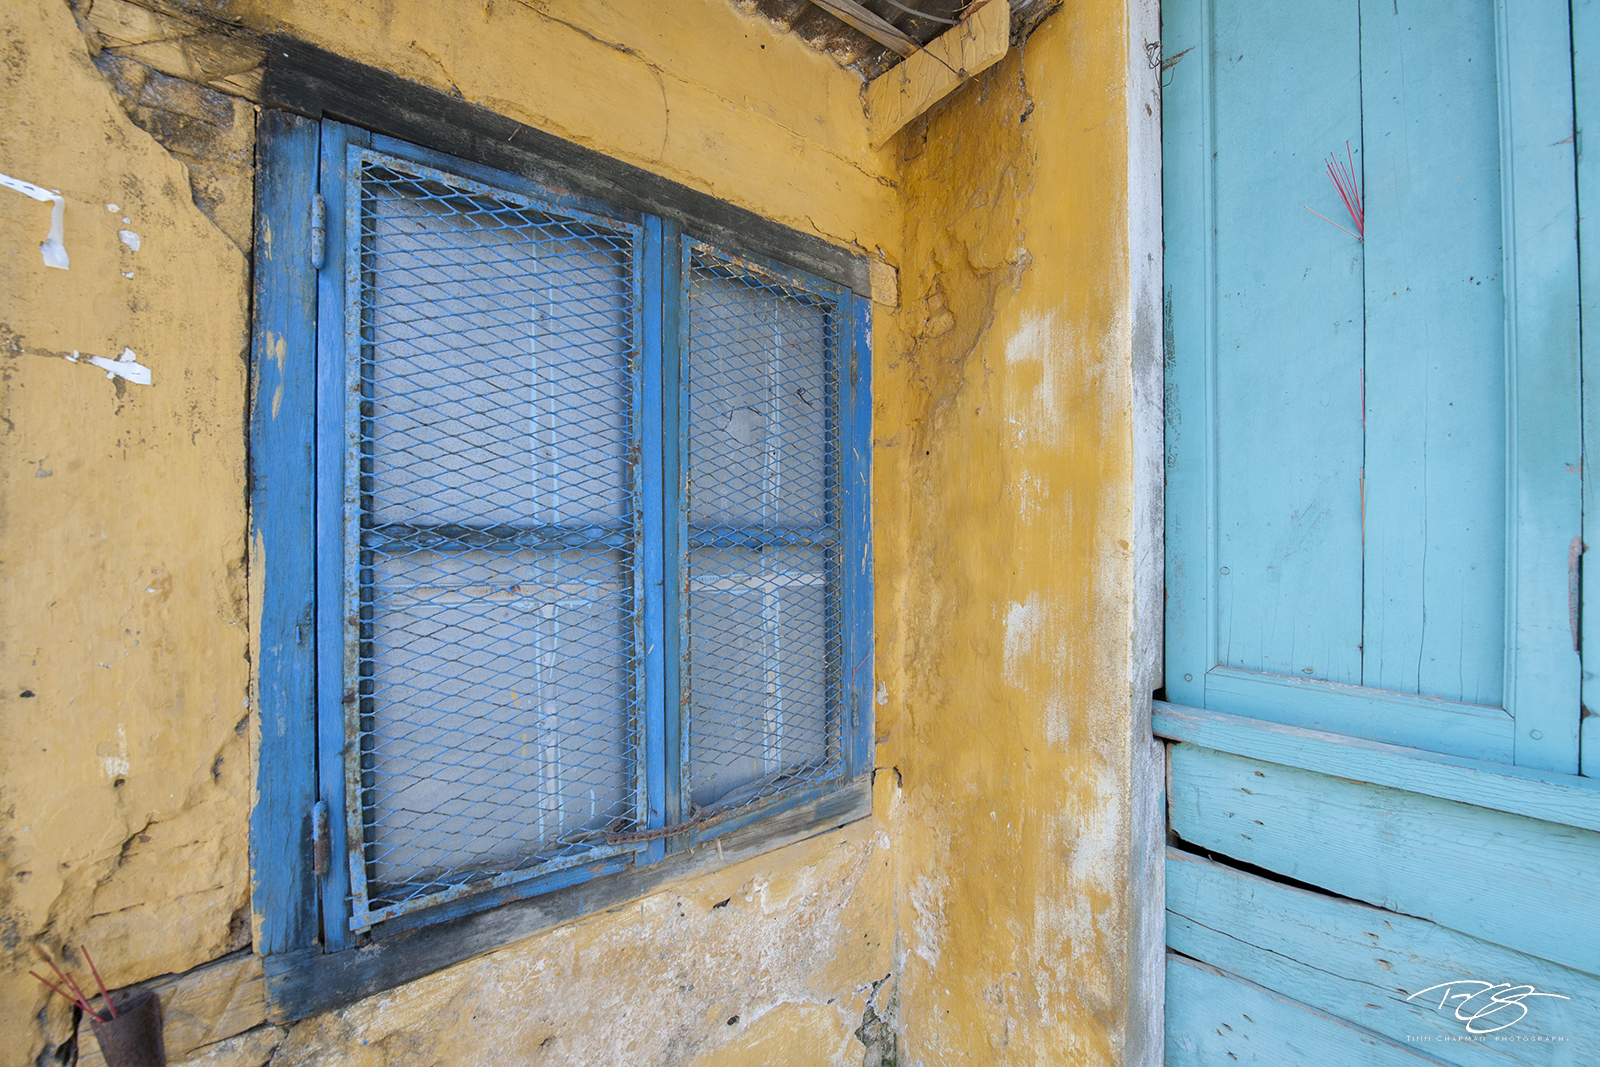 vietnam, door, blue, yellow, peeling paint, window, carribean, caribbean, worn, rustic, hoi an